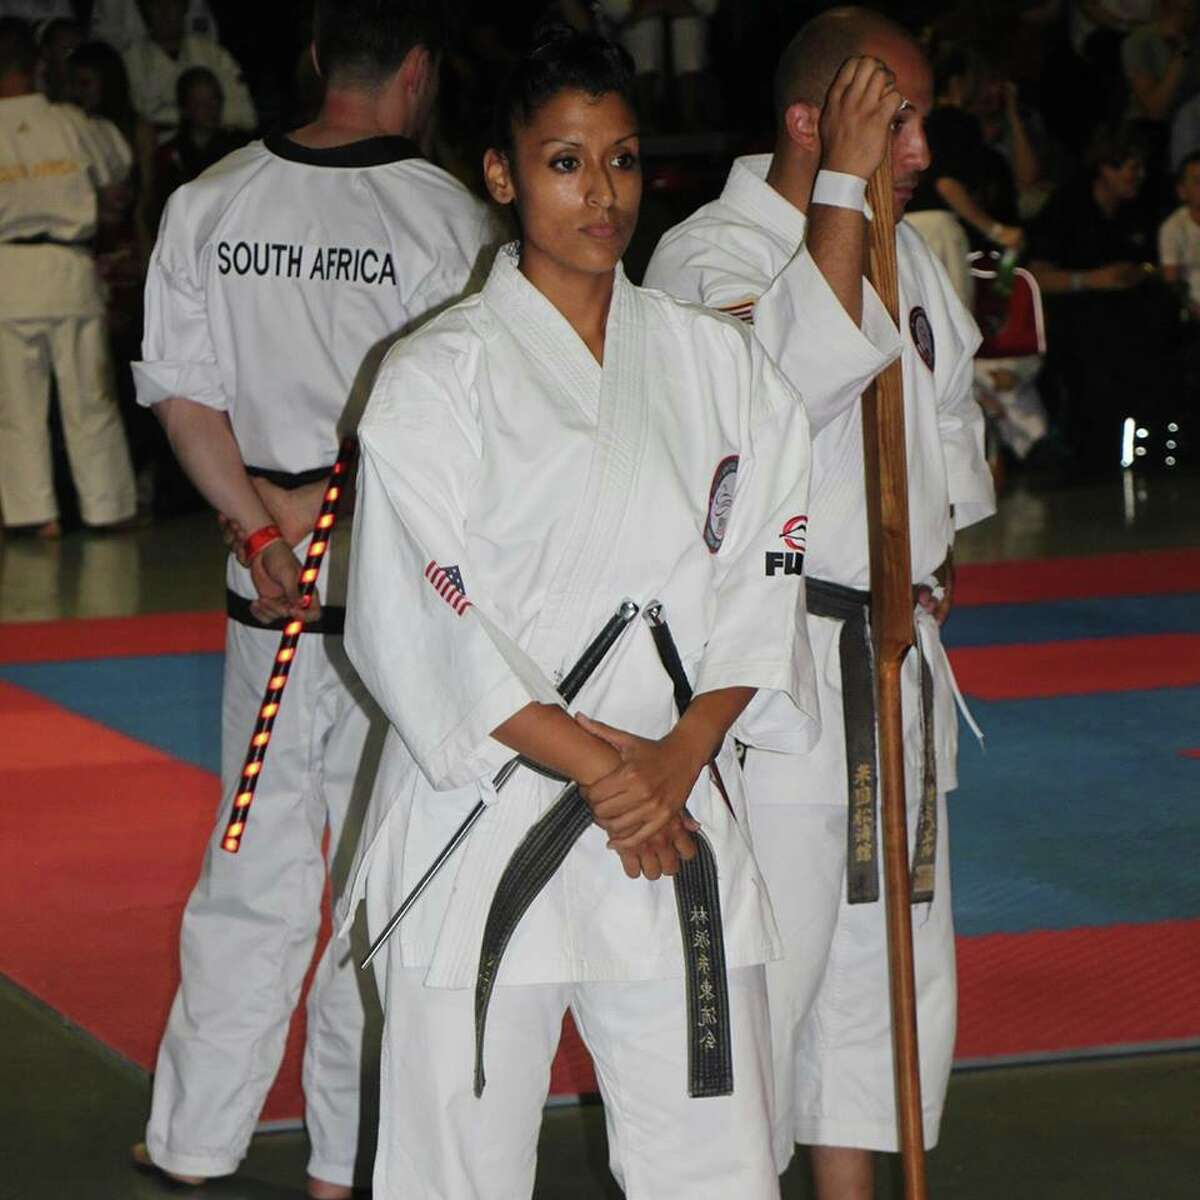 San Antonio's karate scene was represented on the global level this month when Sierra Luna participated with the U.S. national team and brought home a world championship.